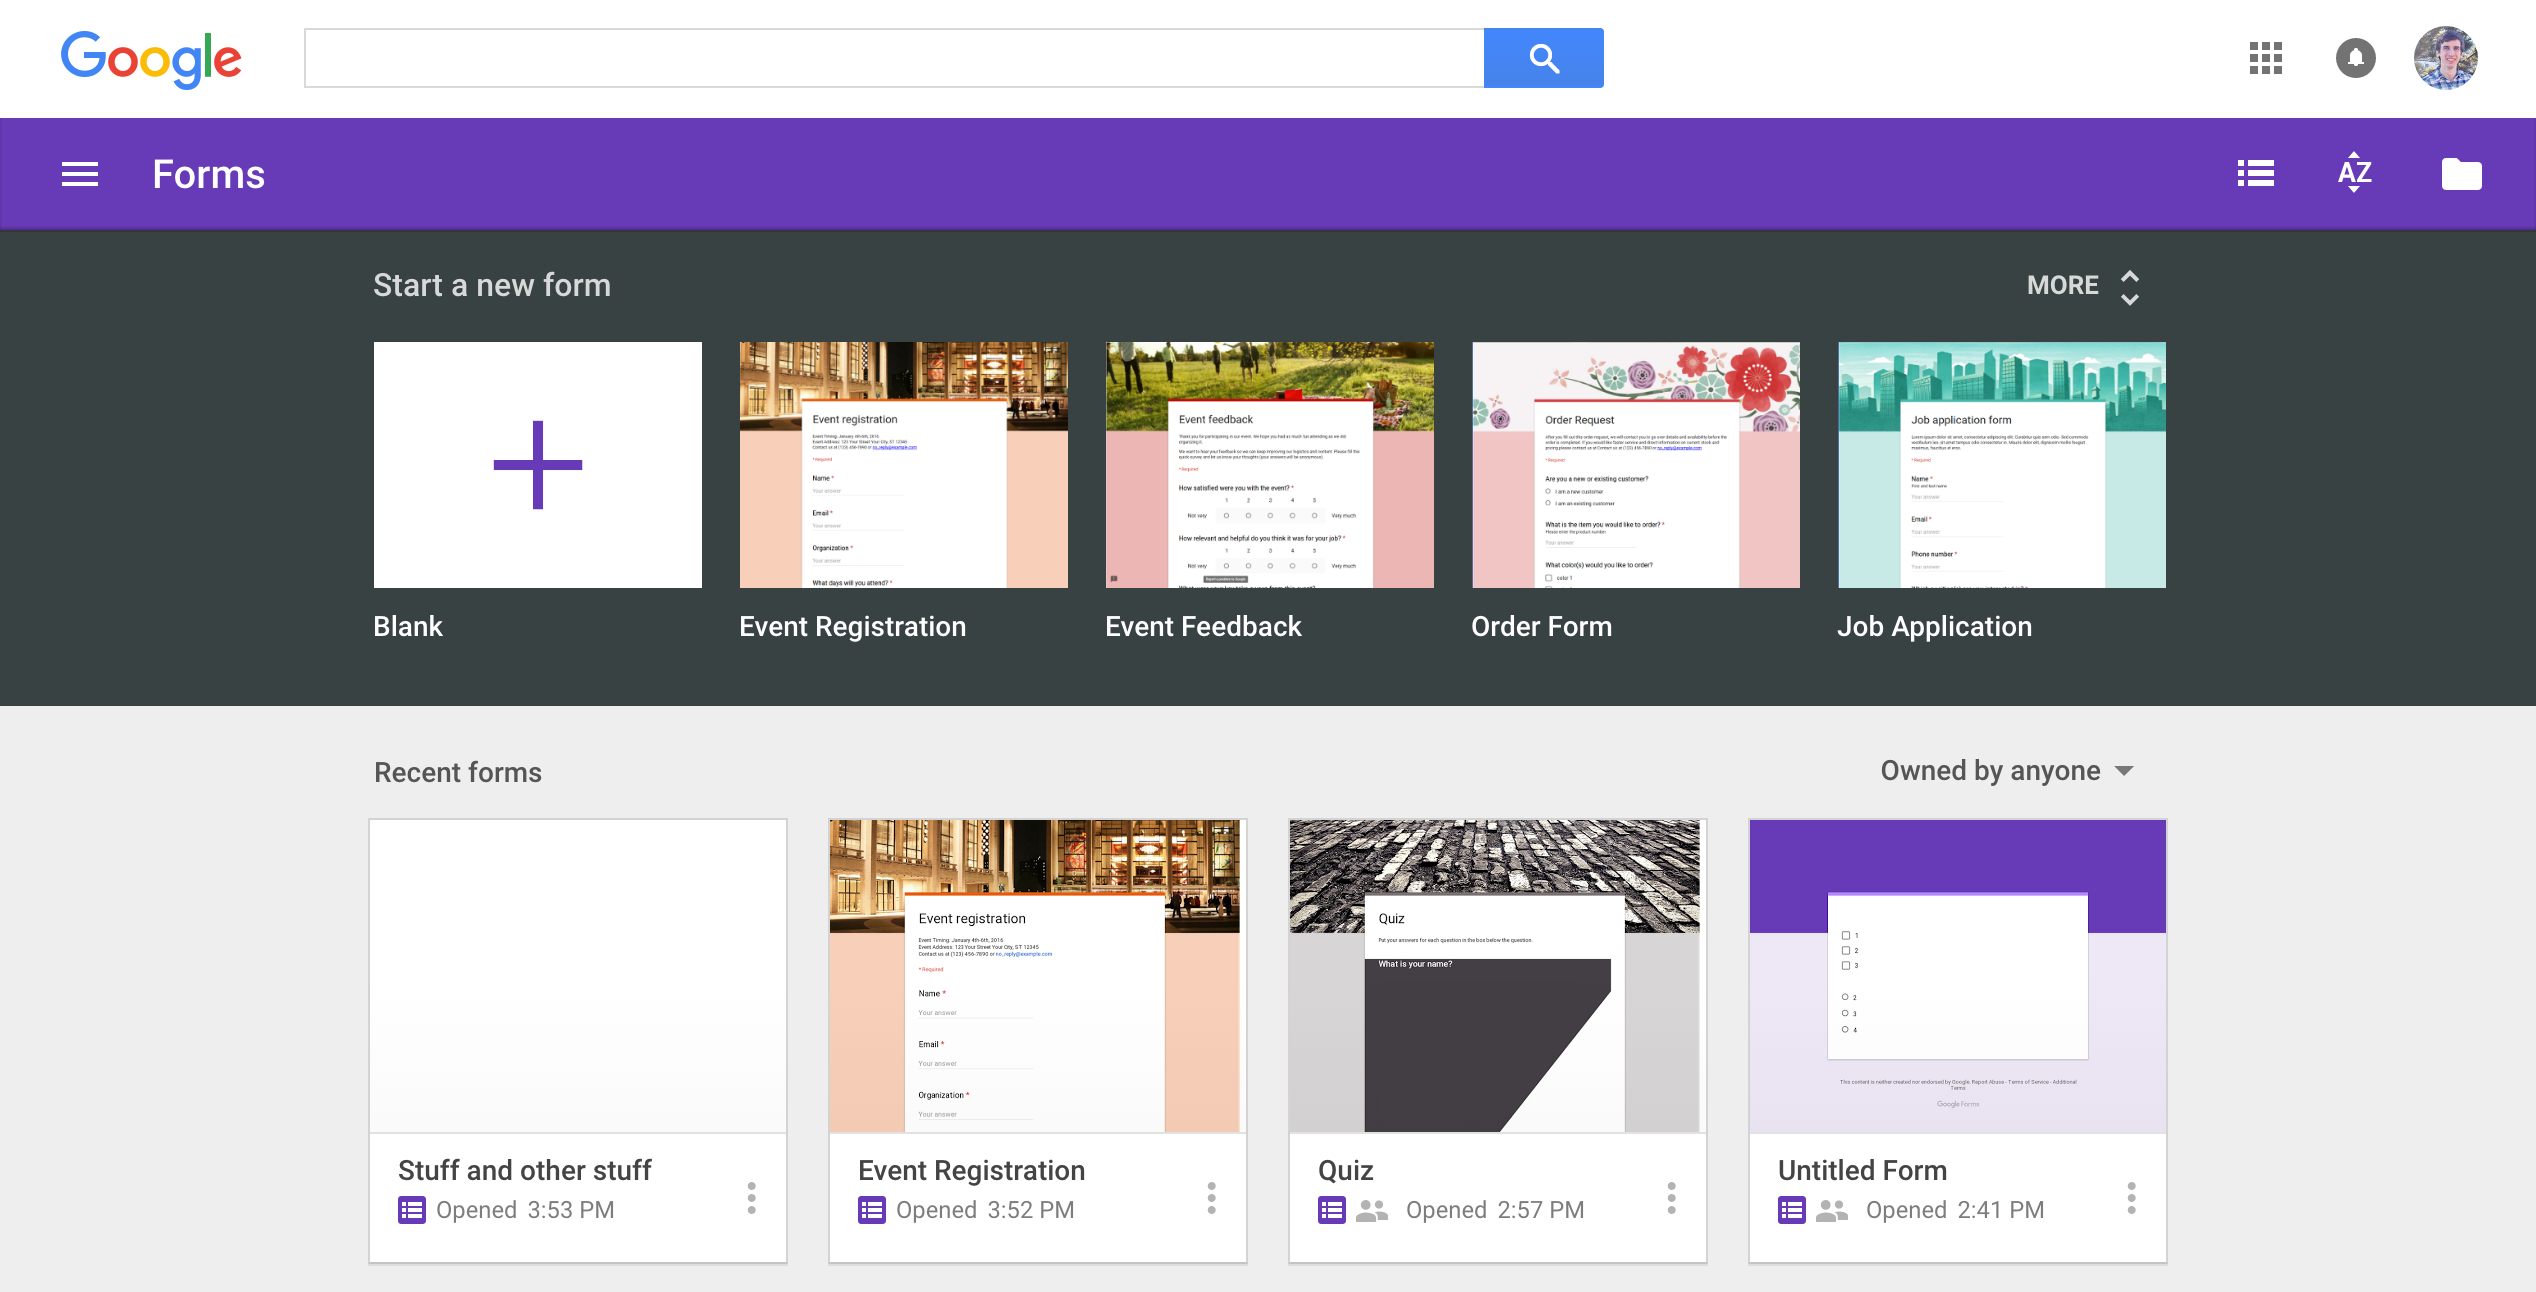 Forms Google Com Spreadsheet For Google Forms Guide: Everything You Need To Make Great Forms For Free